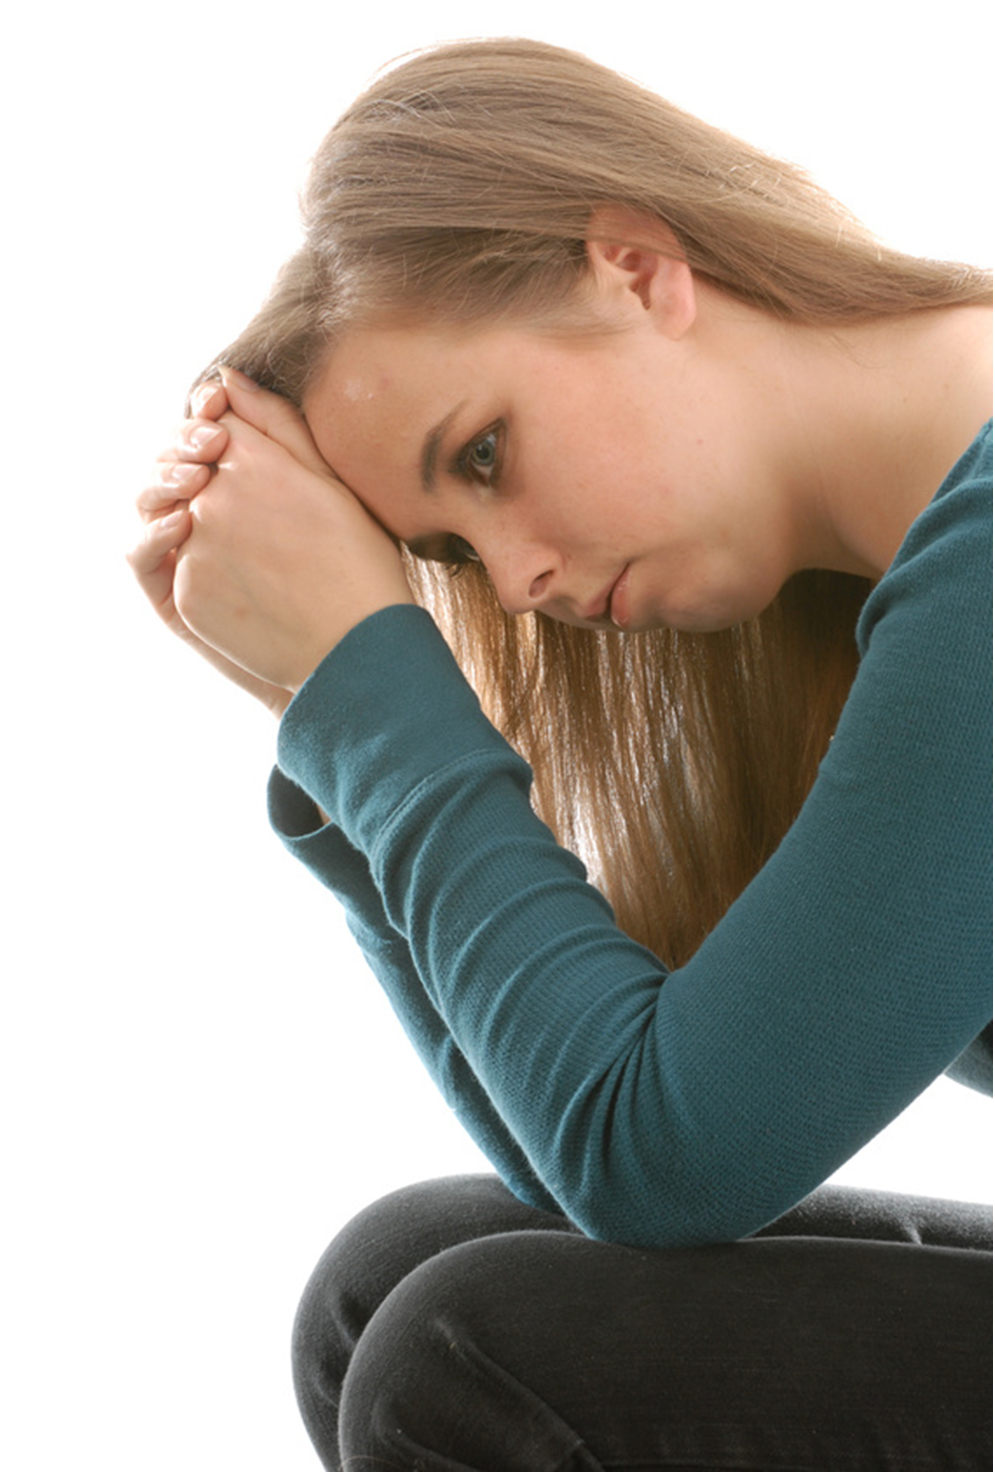 Depression clipart upset person Felstead MailOnline Jane girl Depressed